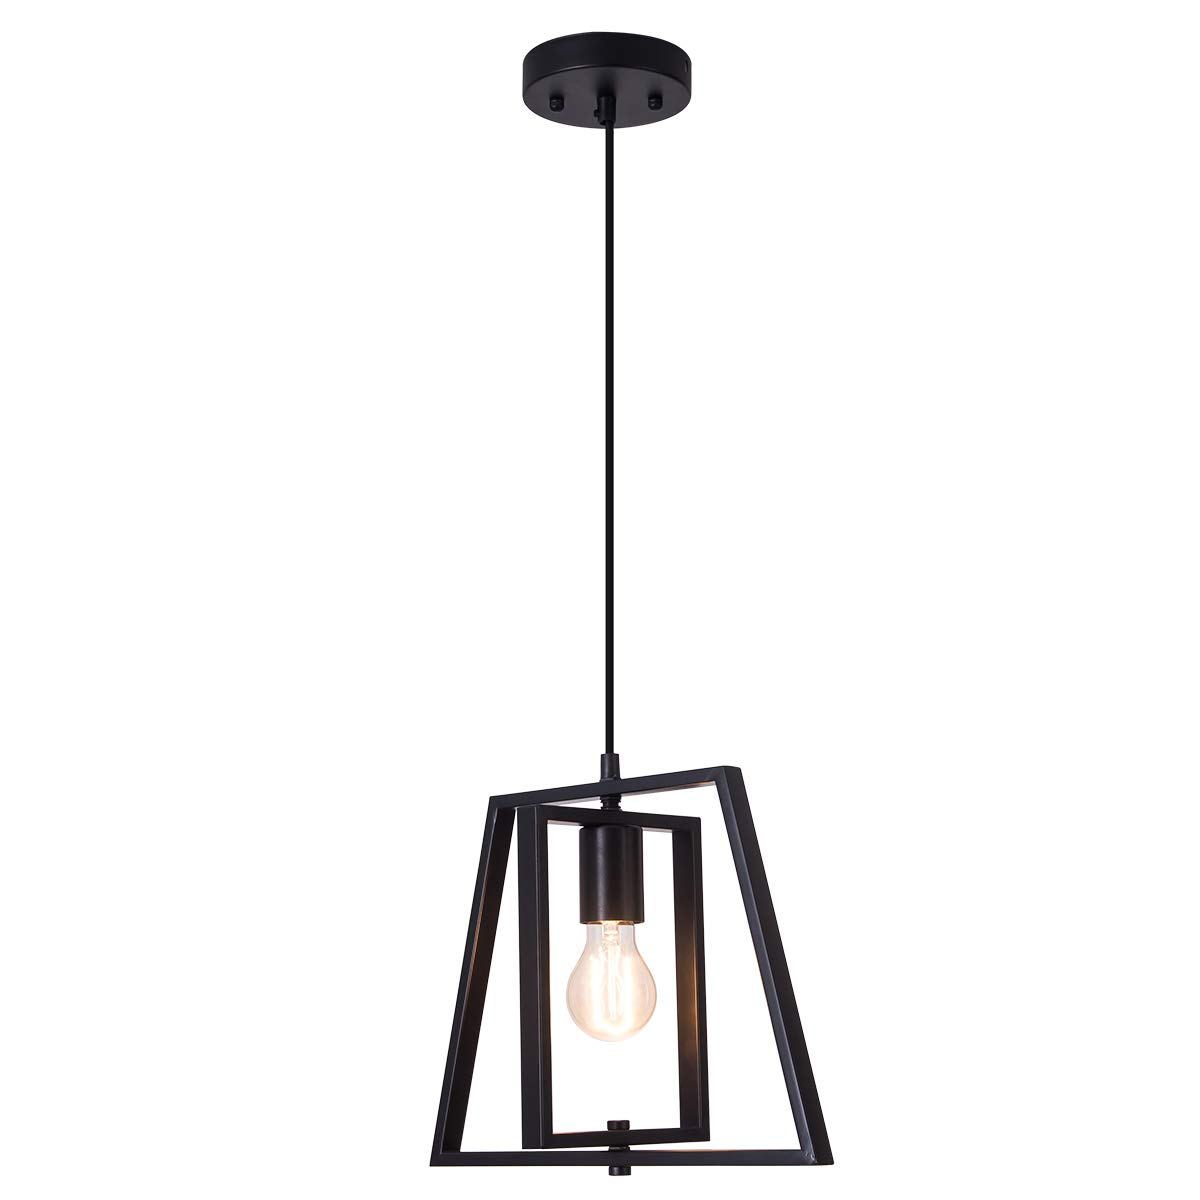 Smellbt Modern Industrial Pendant Light in Welding Finish with Matte Black Shade, Adjustable Trapezoidal Pendant Lighting for Kitchen Island, Dining Rooms, Living Room, Bar